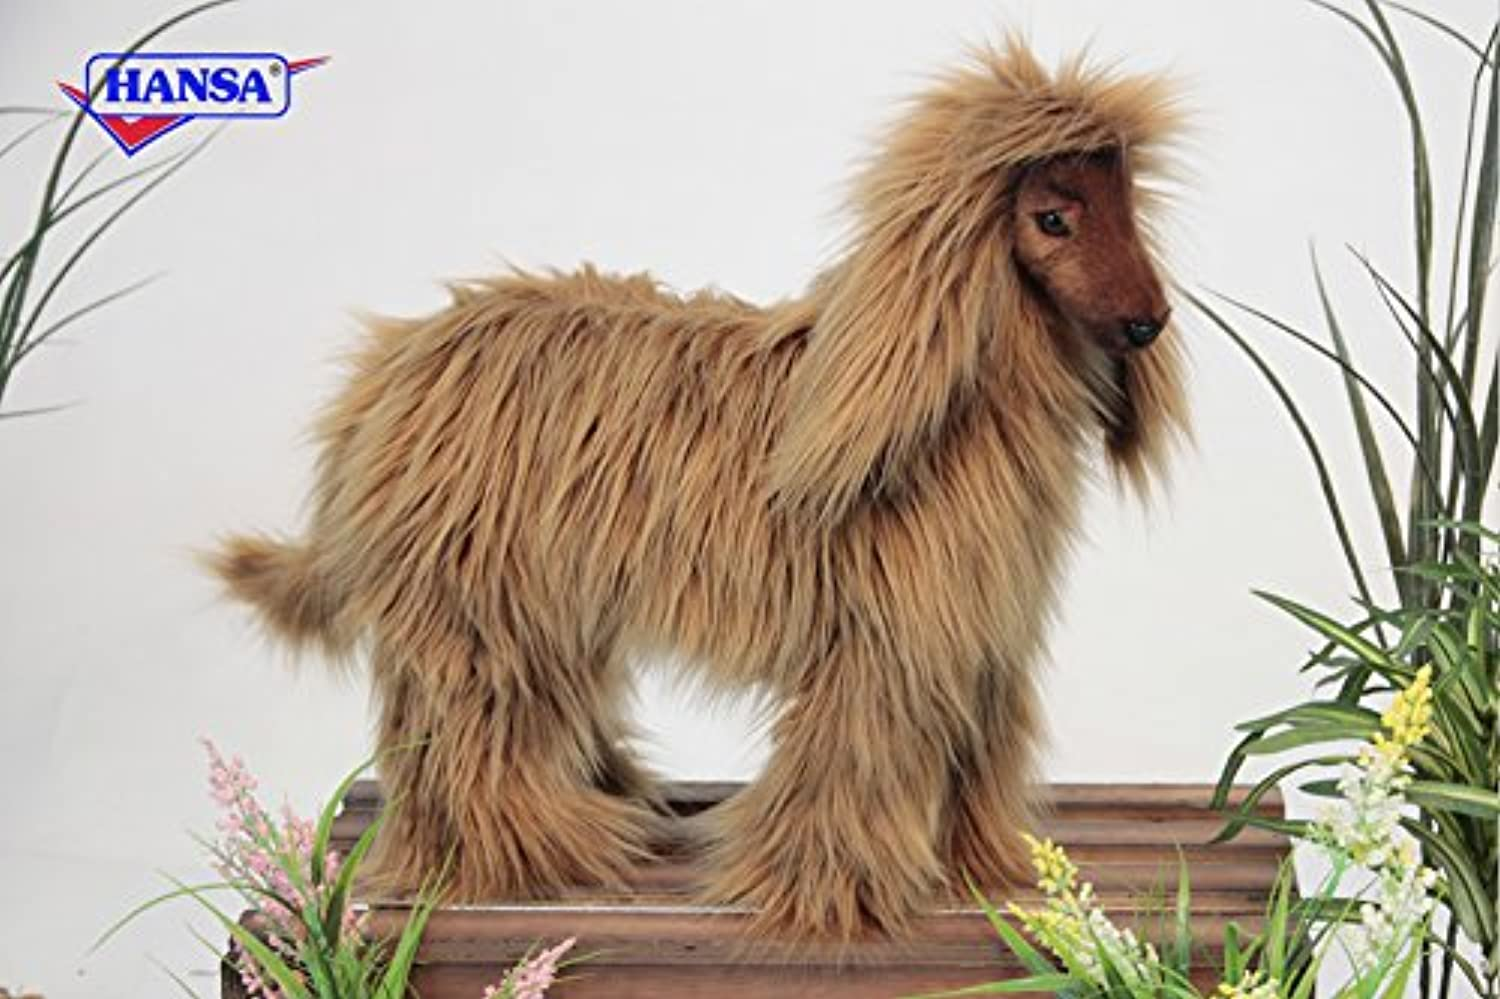 Hansa Afghan Hound Plush Soft Toy by 40cm.4131